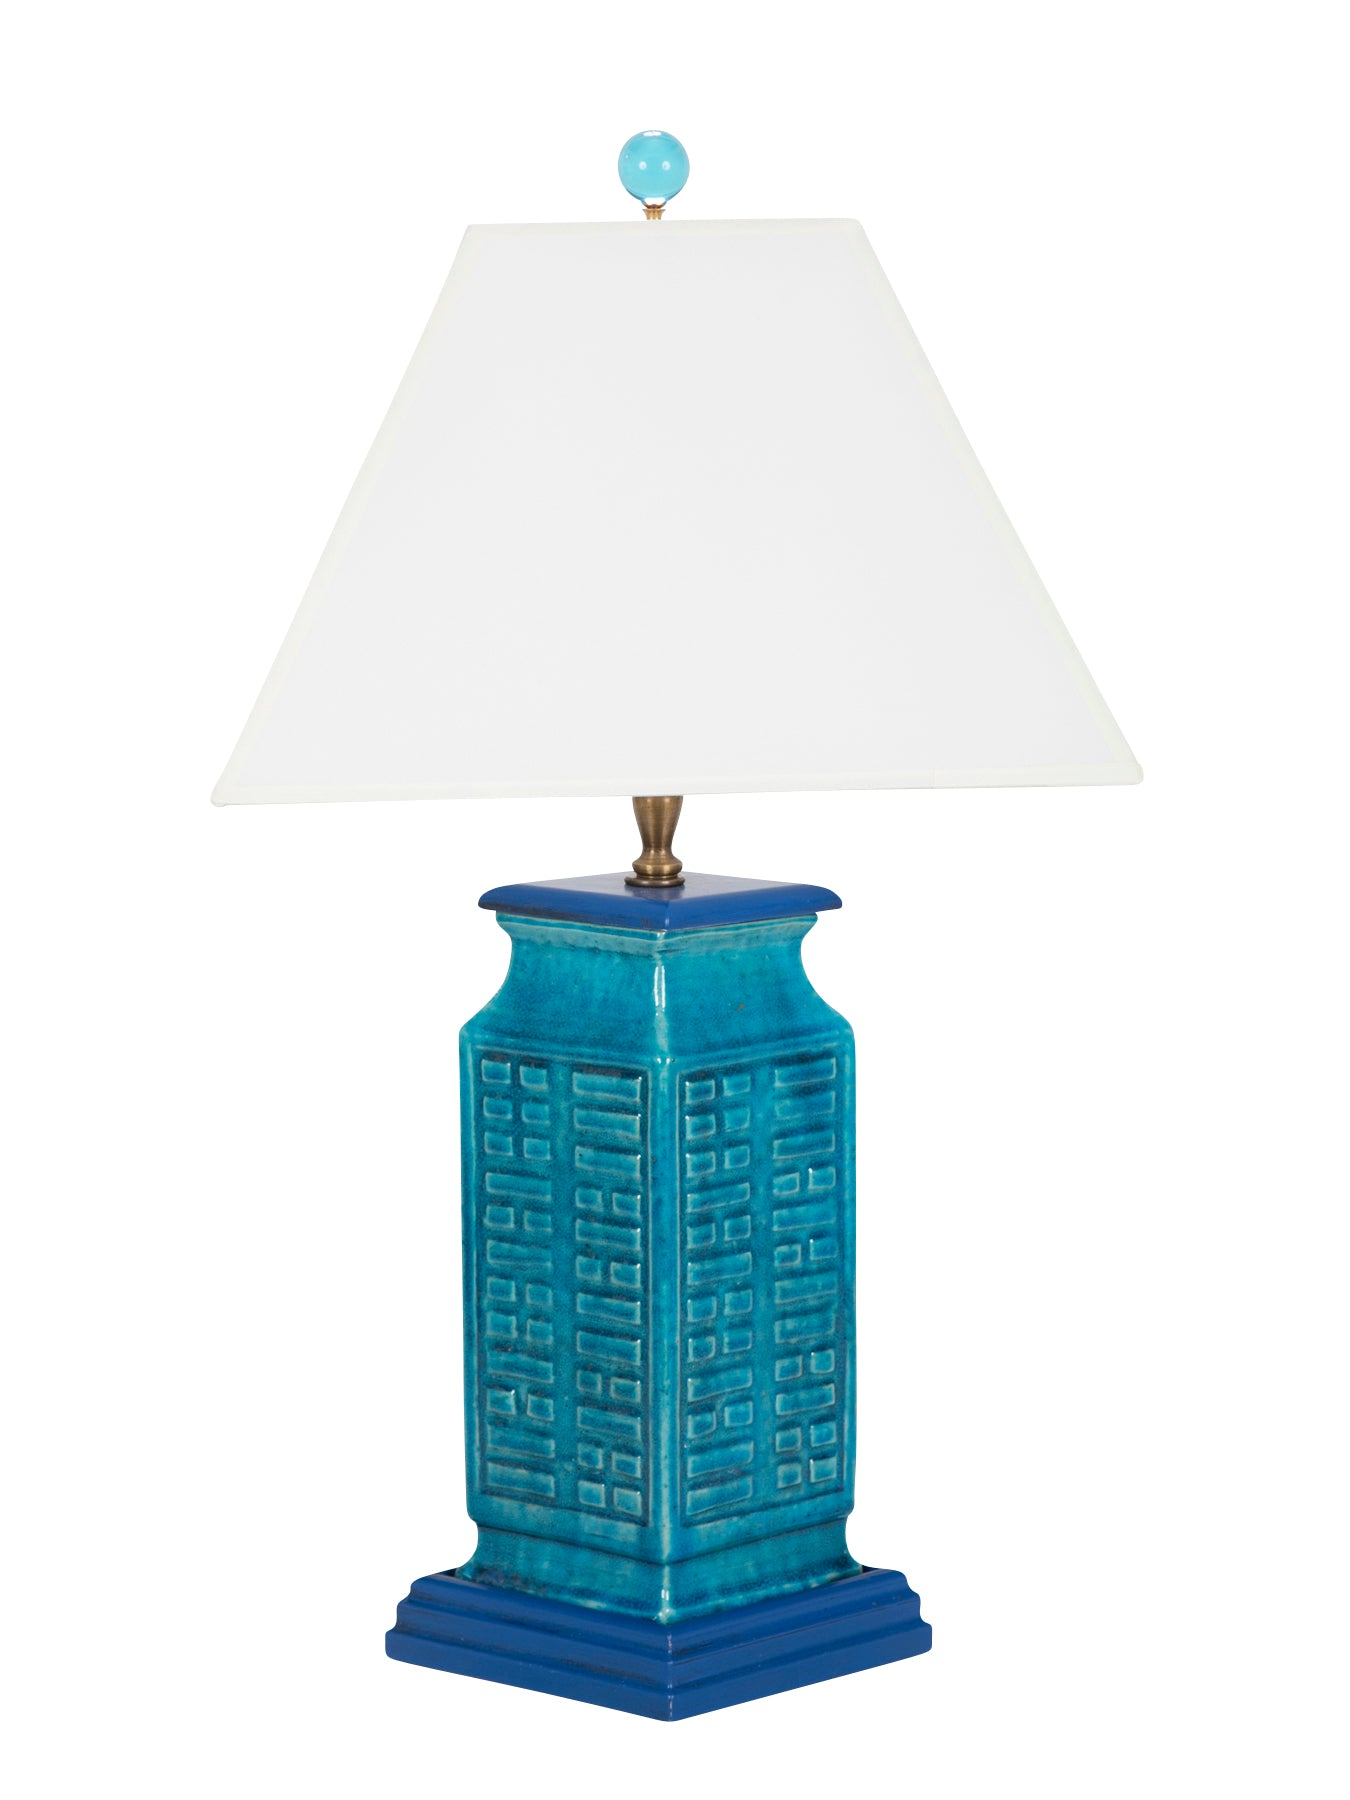 Turquoise Chinese Archaic Form Ceramic Vases now Lamps